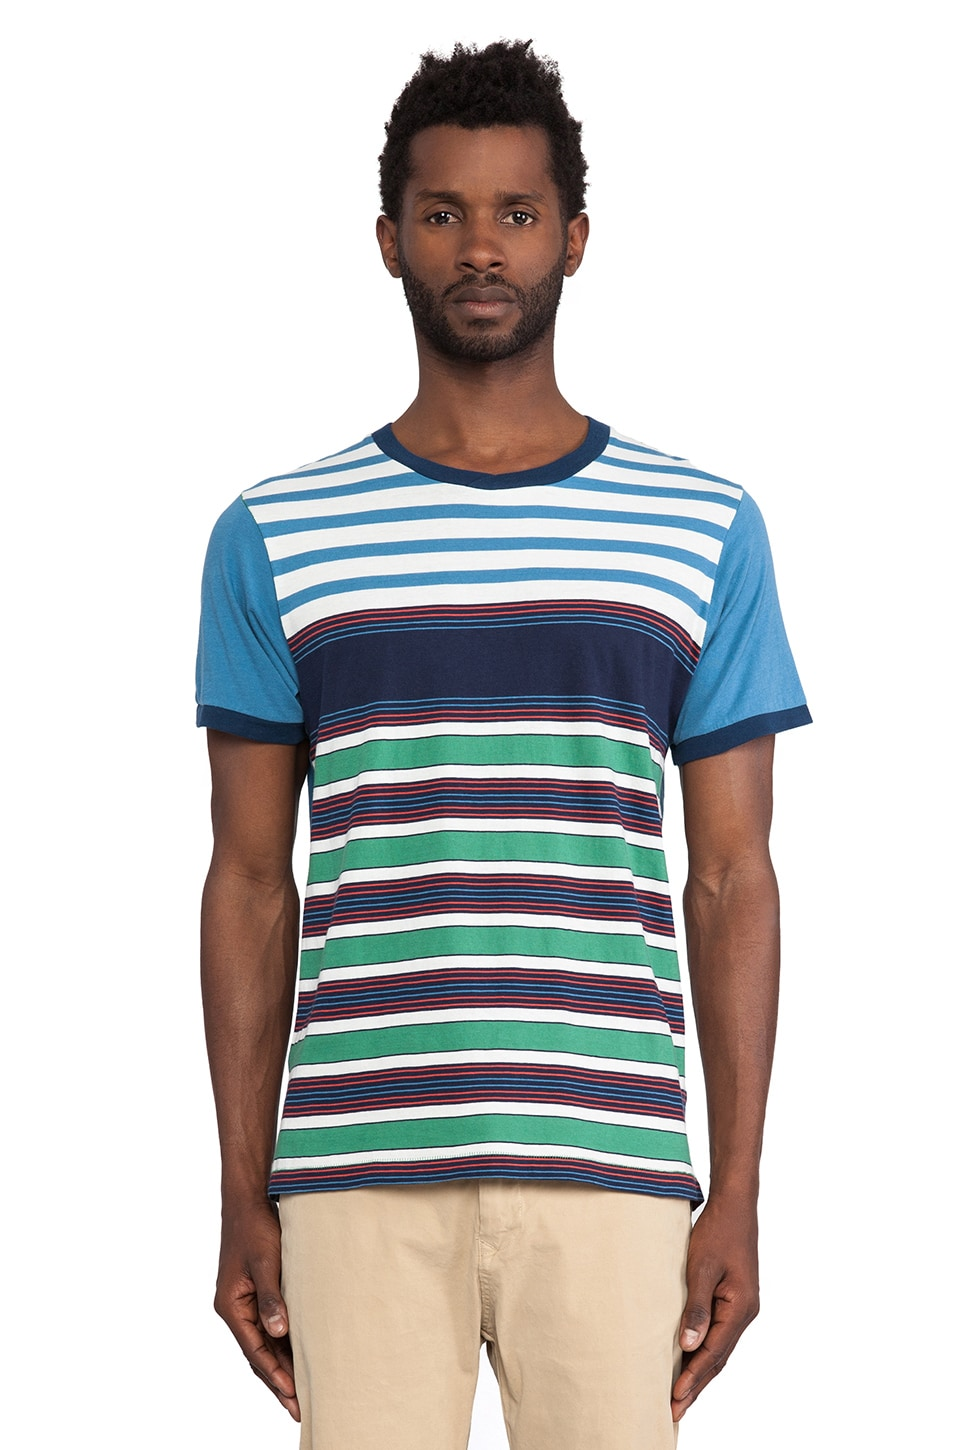 Burkman Bros. Striped Crew Neck Tee in Blue & Green